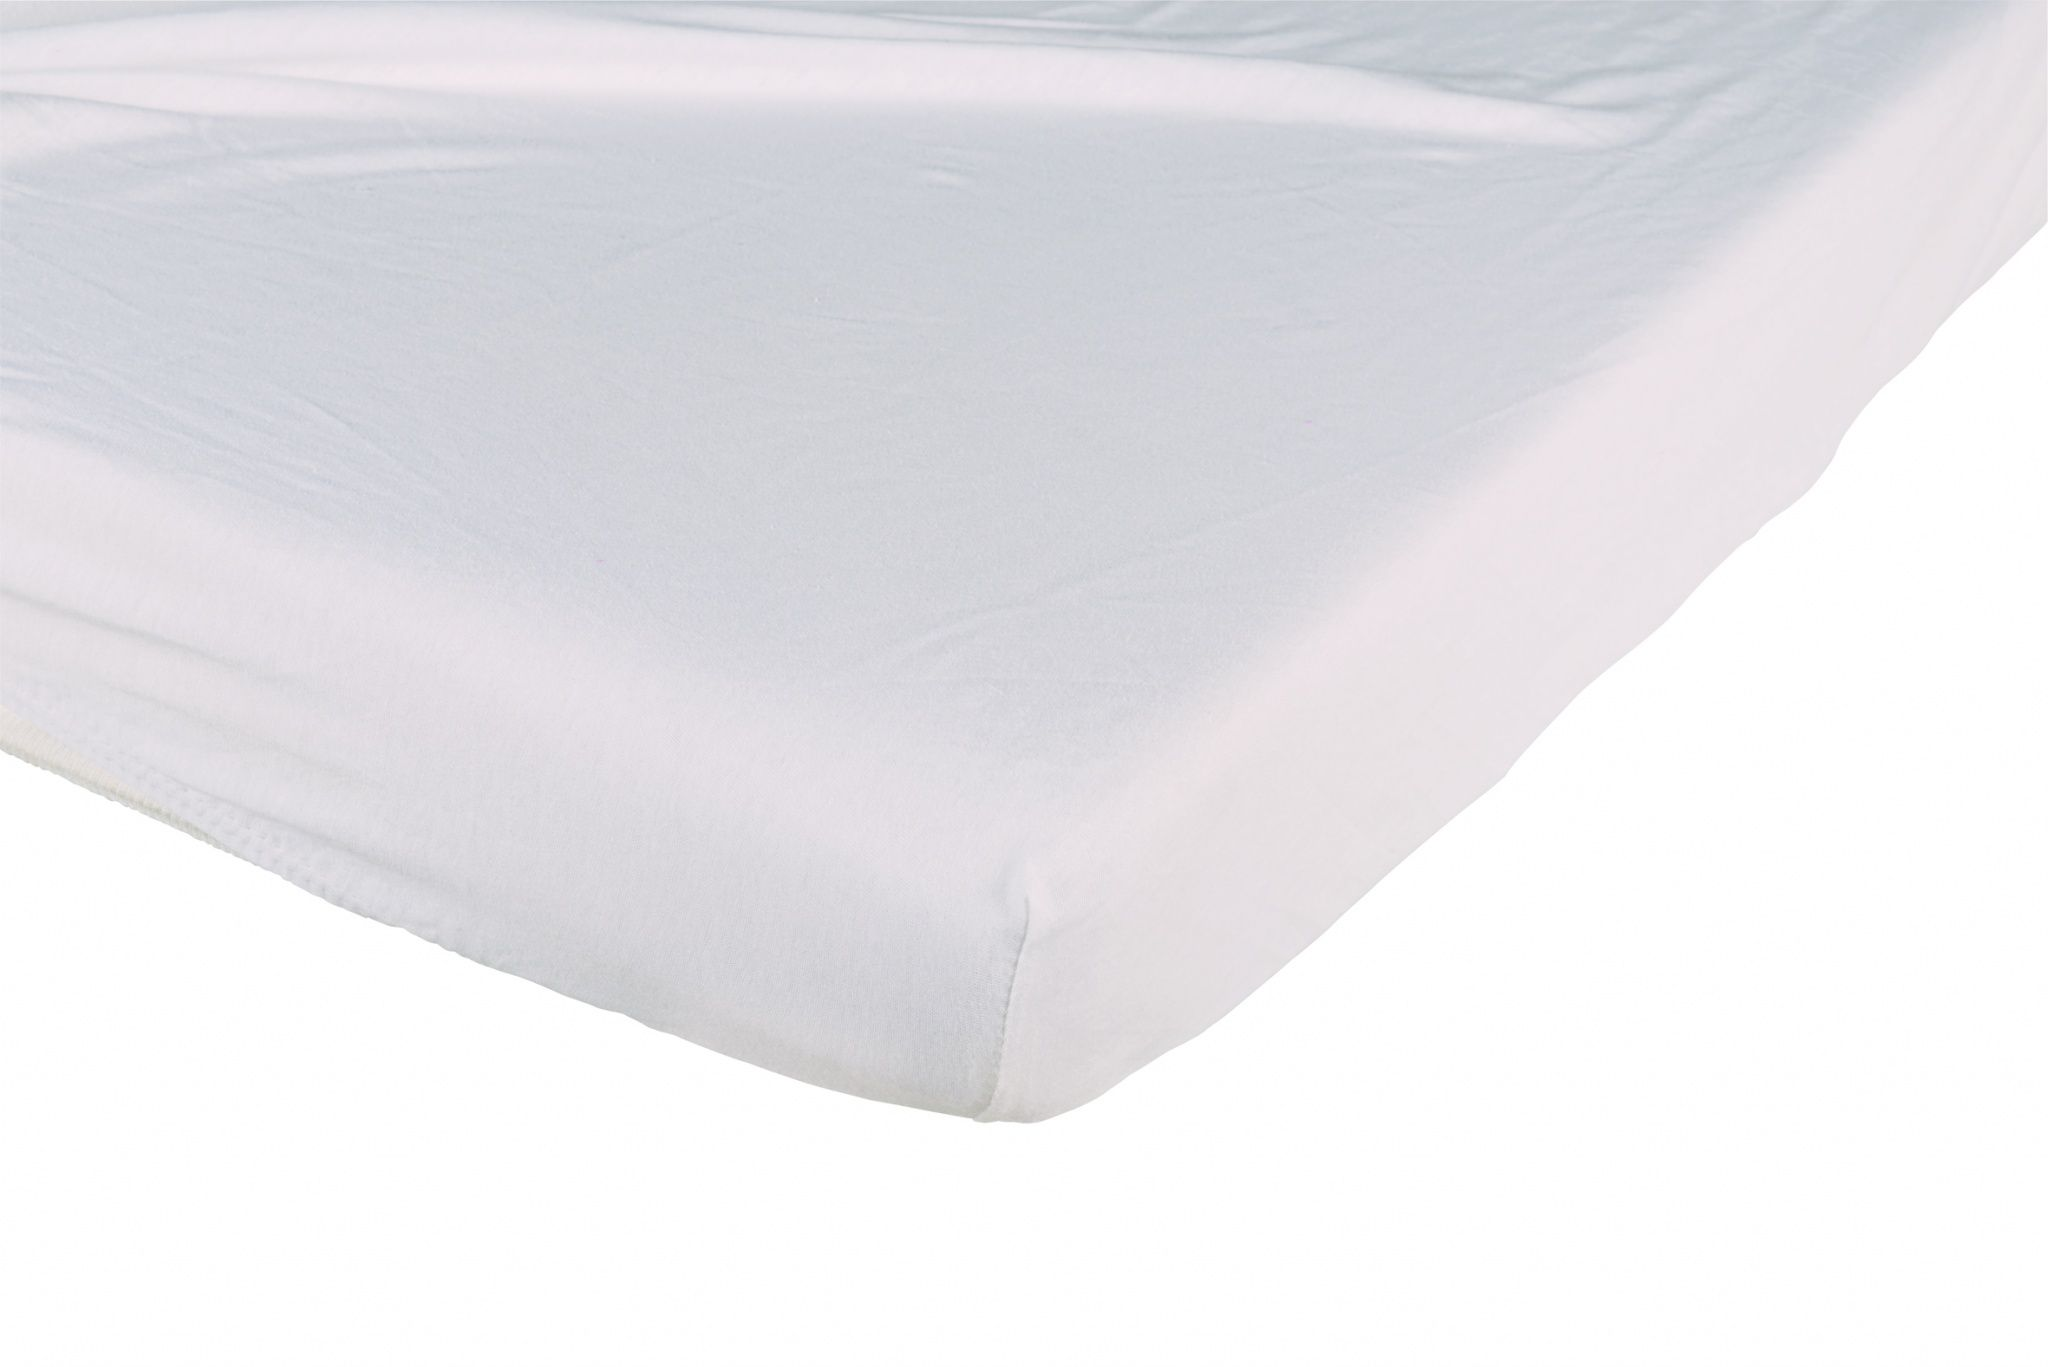 TERRY TOWELLING FITTED SHEET  60x120 70x140 CM BABY COT BEDDING MATTRESS